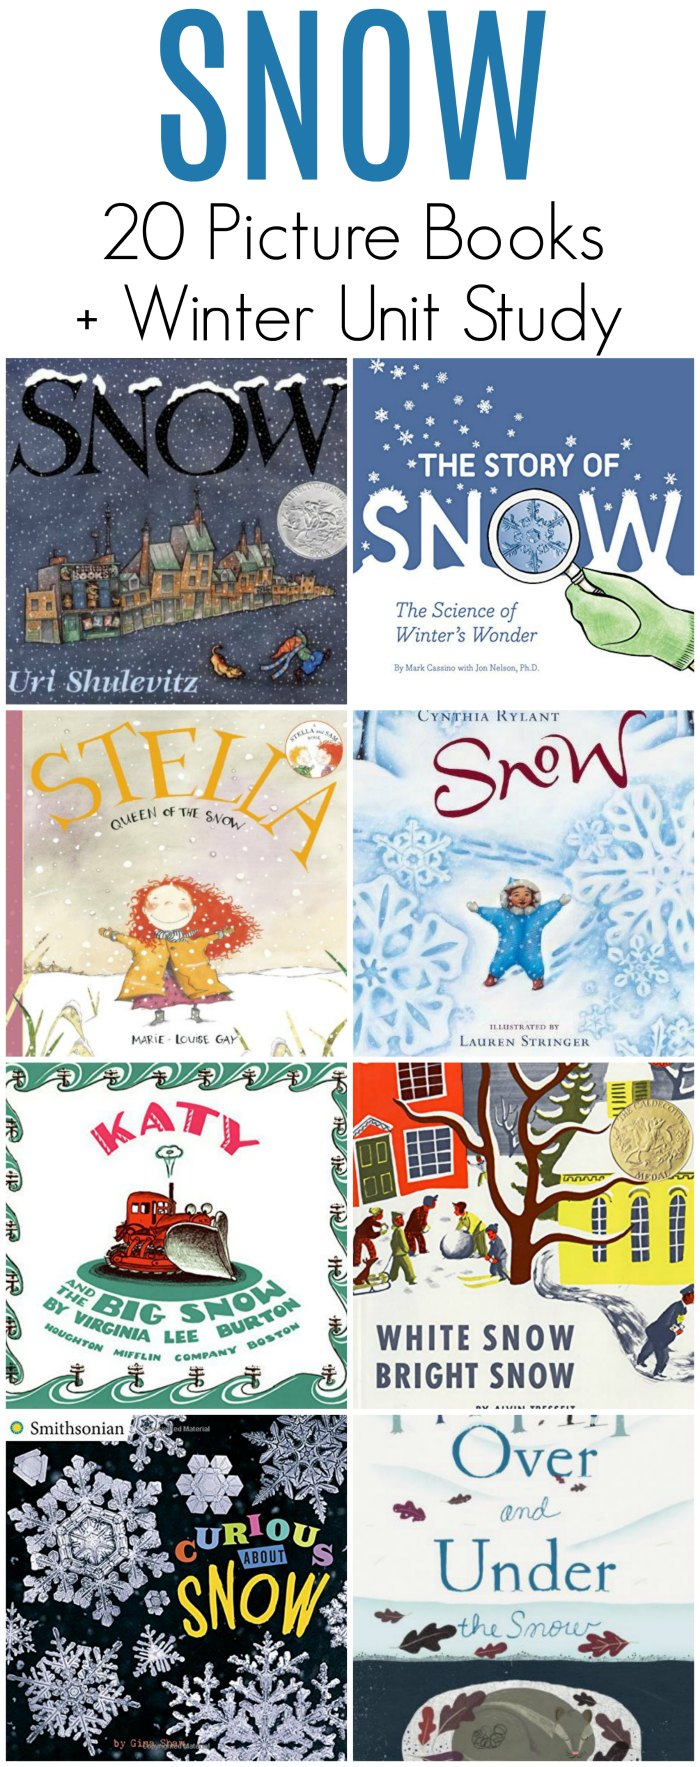 Snow Childrens Books - 20 picture books about snow + winter unit study | Mommy Evolution